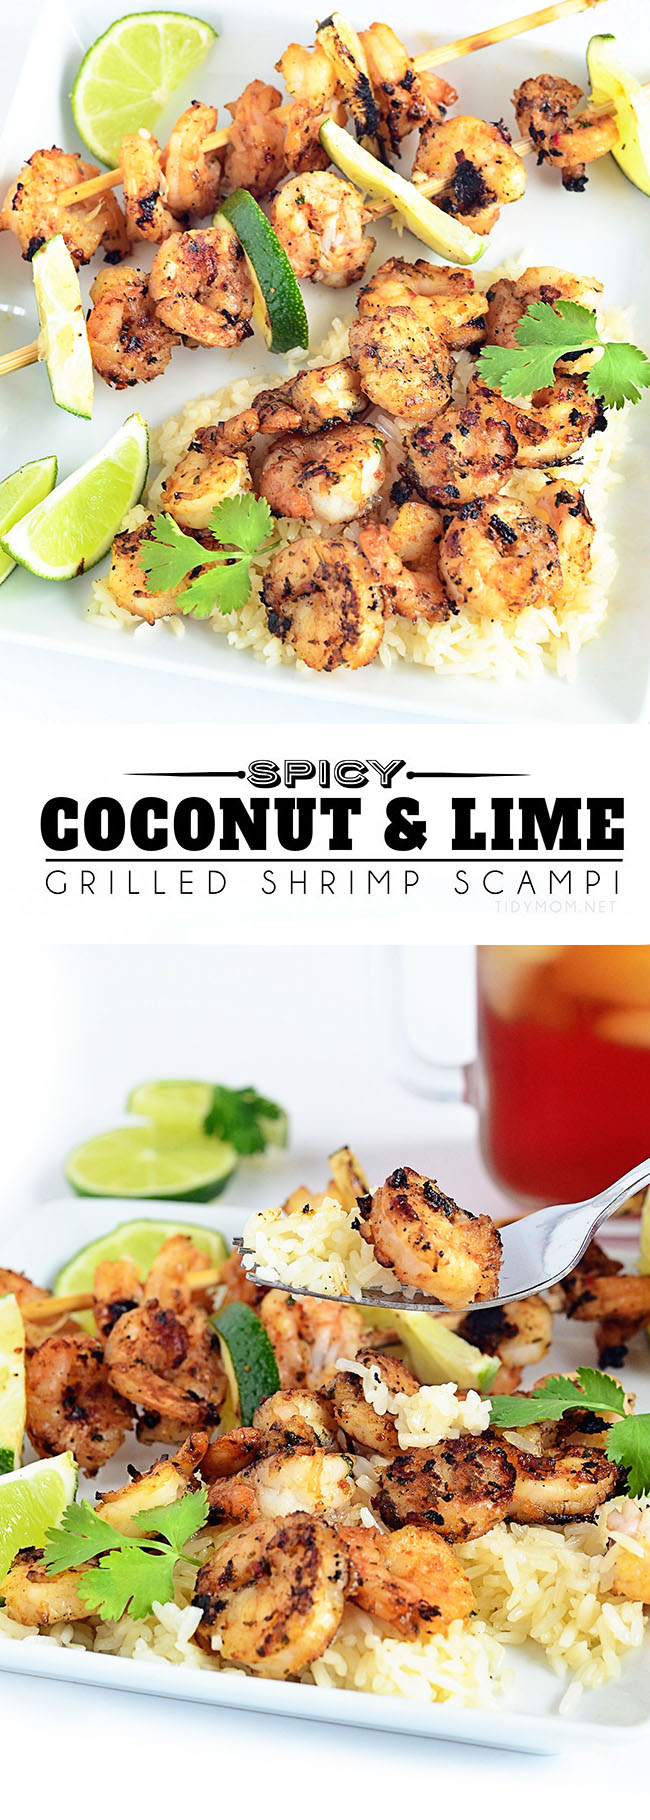 This simple and delicious grilled shrimp recipe blends coconut and lime while adding a touch of spice with Sriracha sauce to scrimp scampi. SPICY COCONUT & LIME GRILLED SHRIMP SCAMPI recipe at TidyMom.net